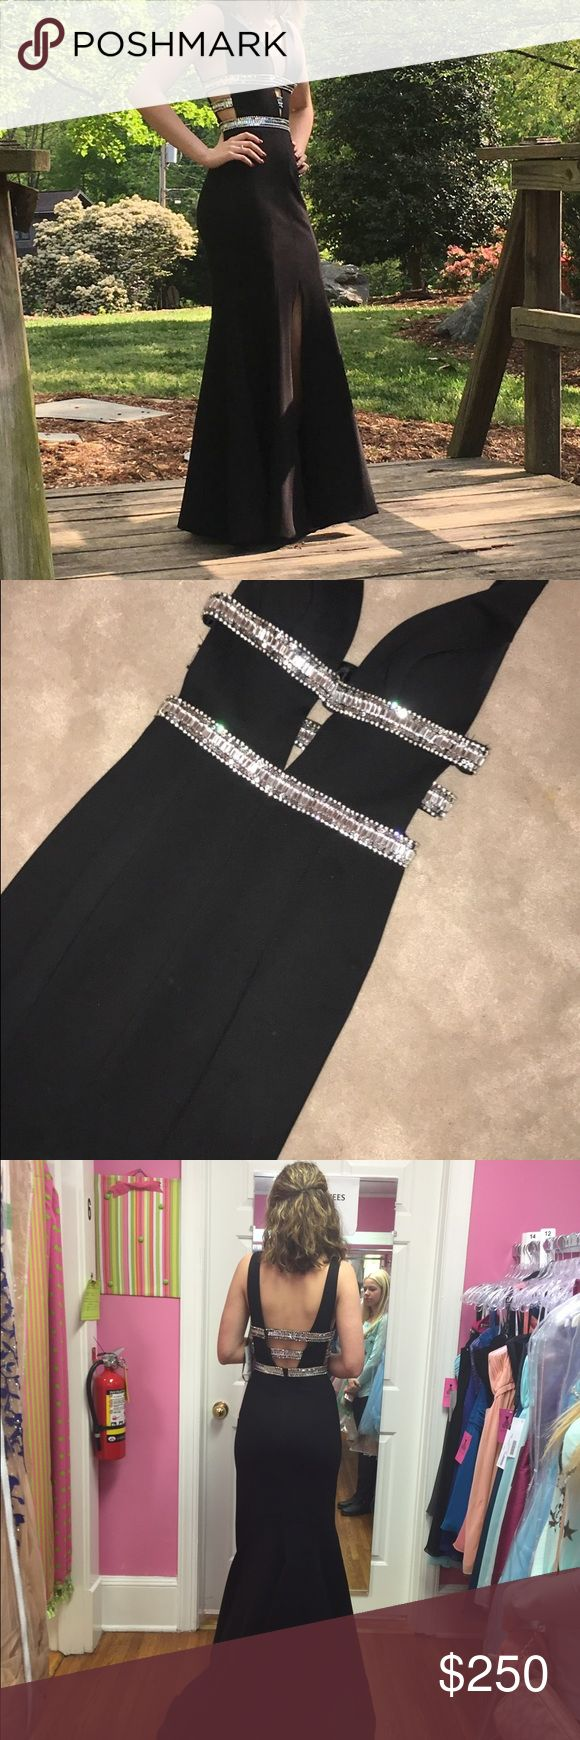 Sherri Hill Dress Long Black Sherri Hill #50184 Size 00 Dress. Perfect for Prom! Price is negotiable. Only Worn Once. Sherri Hill Dresses Prom